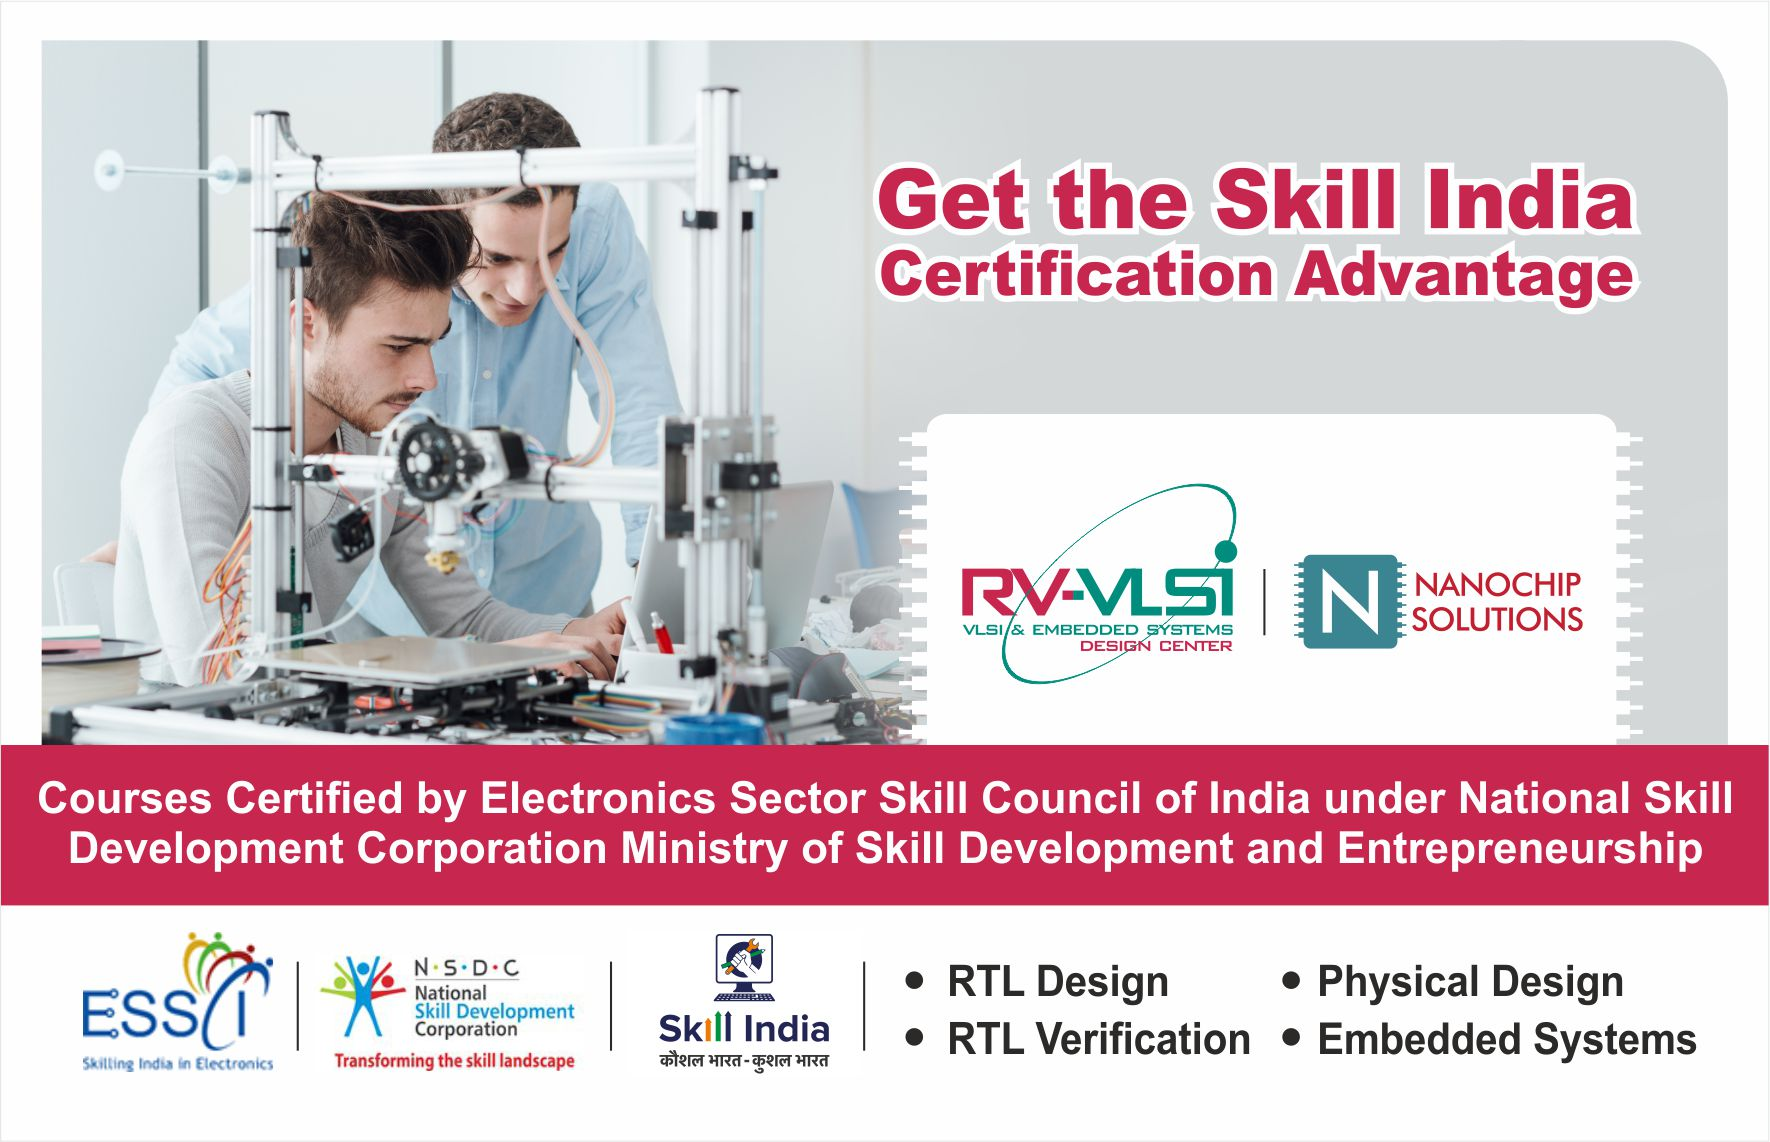 Vlsi Physical Design Institutes In Hyderabad: RV-VLSI VLSI and Embedded training institute in Bangalorerh:rv-vlsi.com,Design